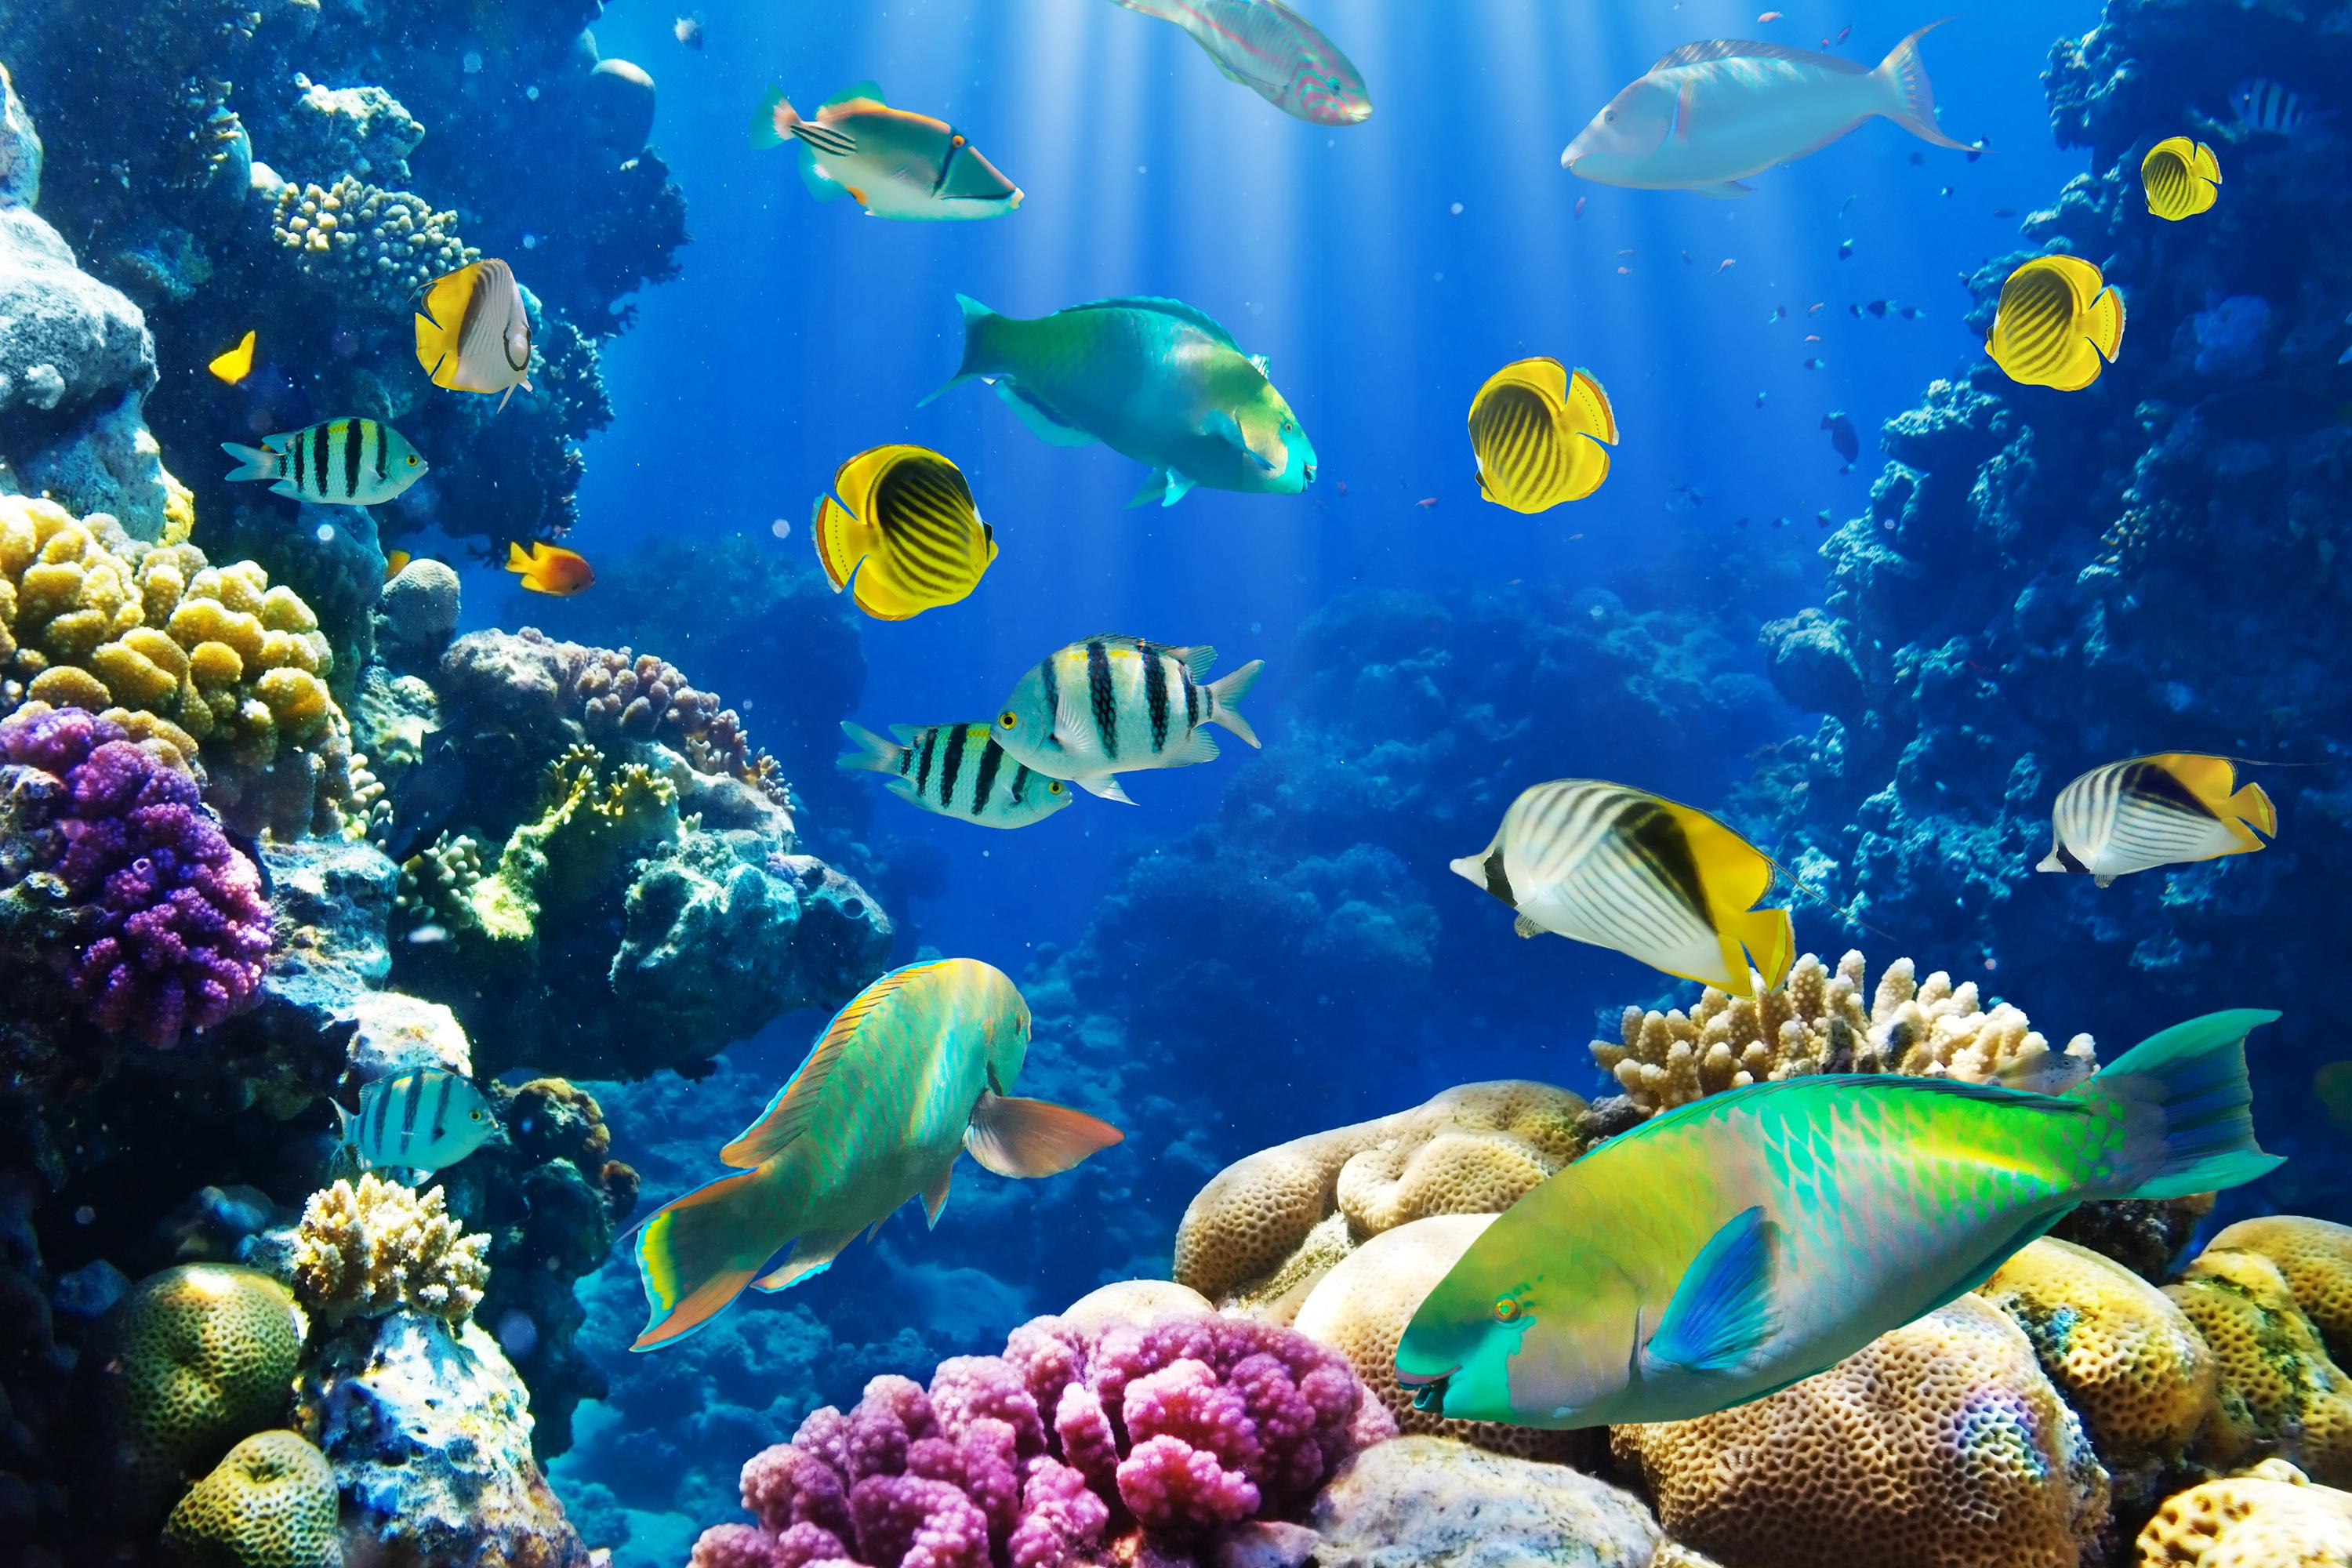 underwater_coral_ocean_reef_fish_tropical_hd-wallpaper ...